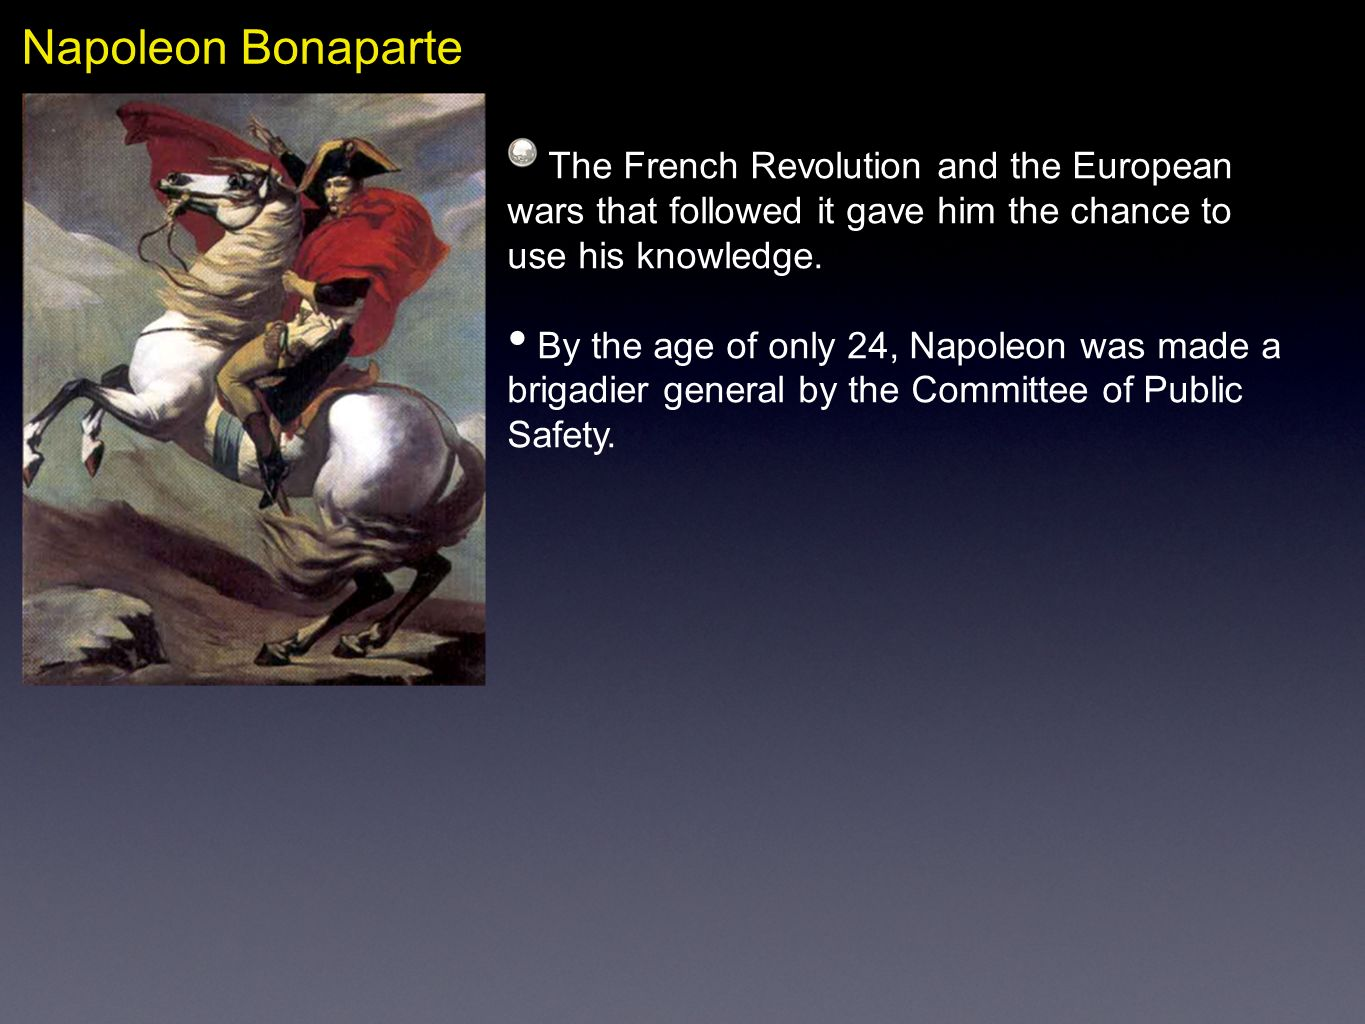 Napoleon BonaparteThe French Revolution and the European wars that followed it gave him the chance to use his knowledge.